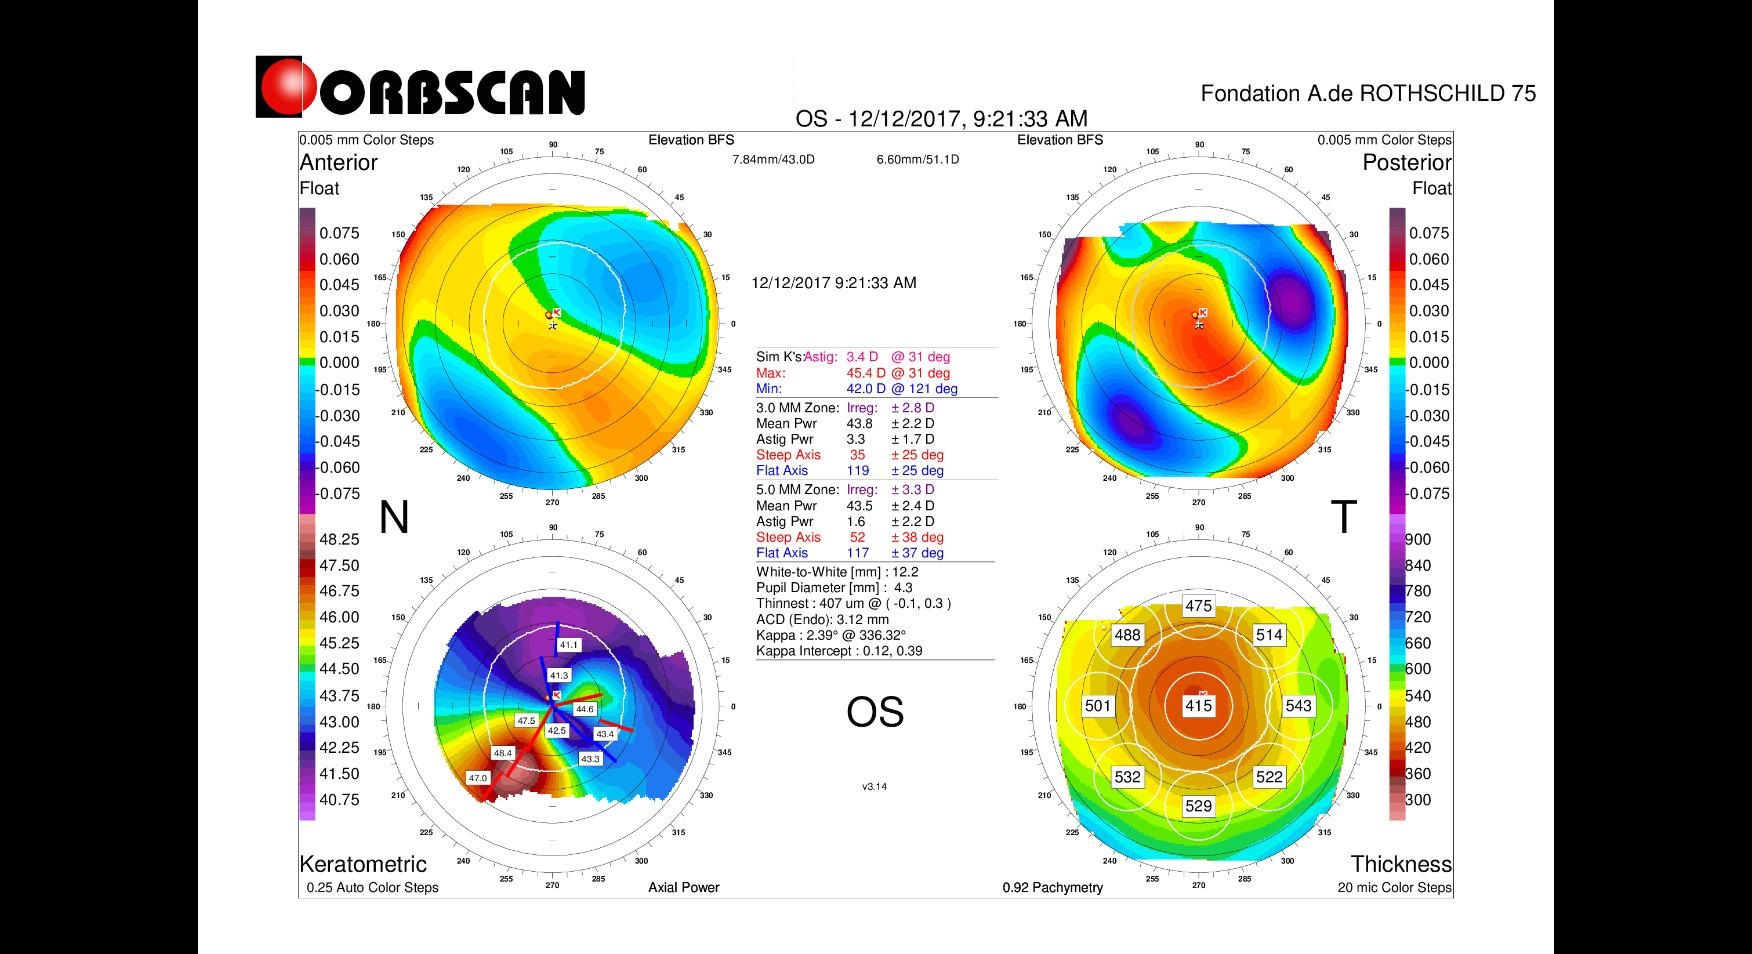 Orbscan map post LASIK ectasia stability